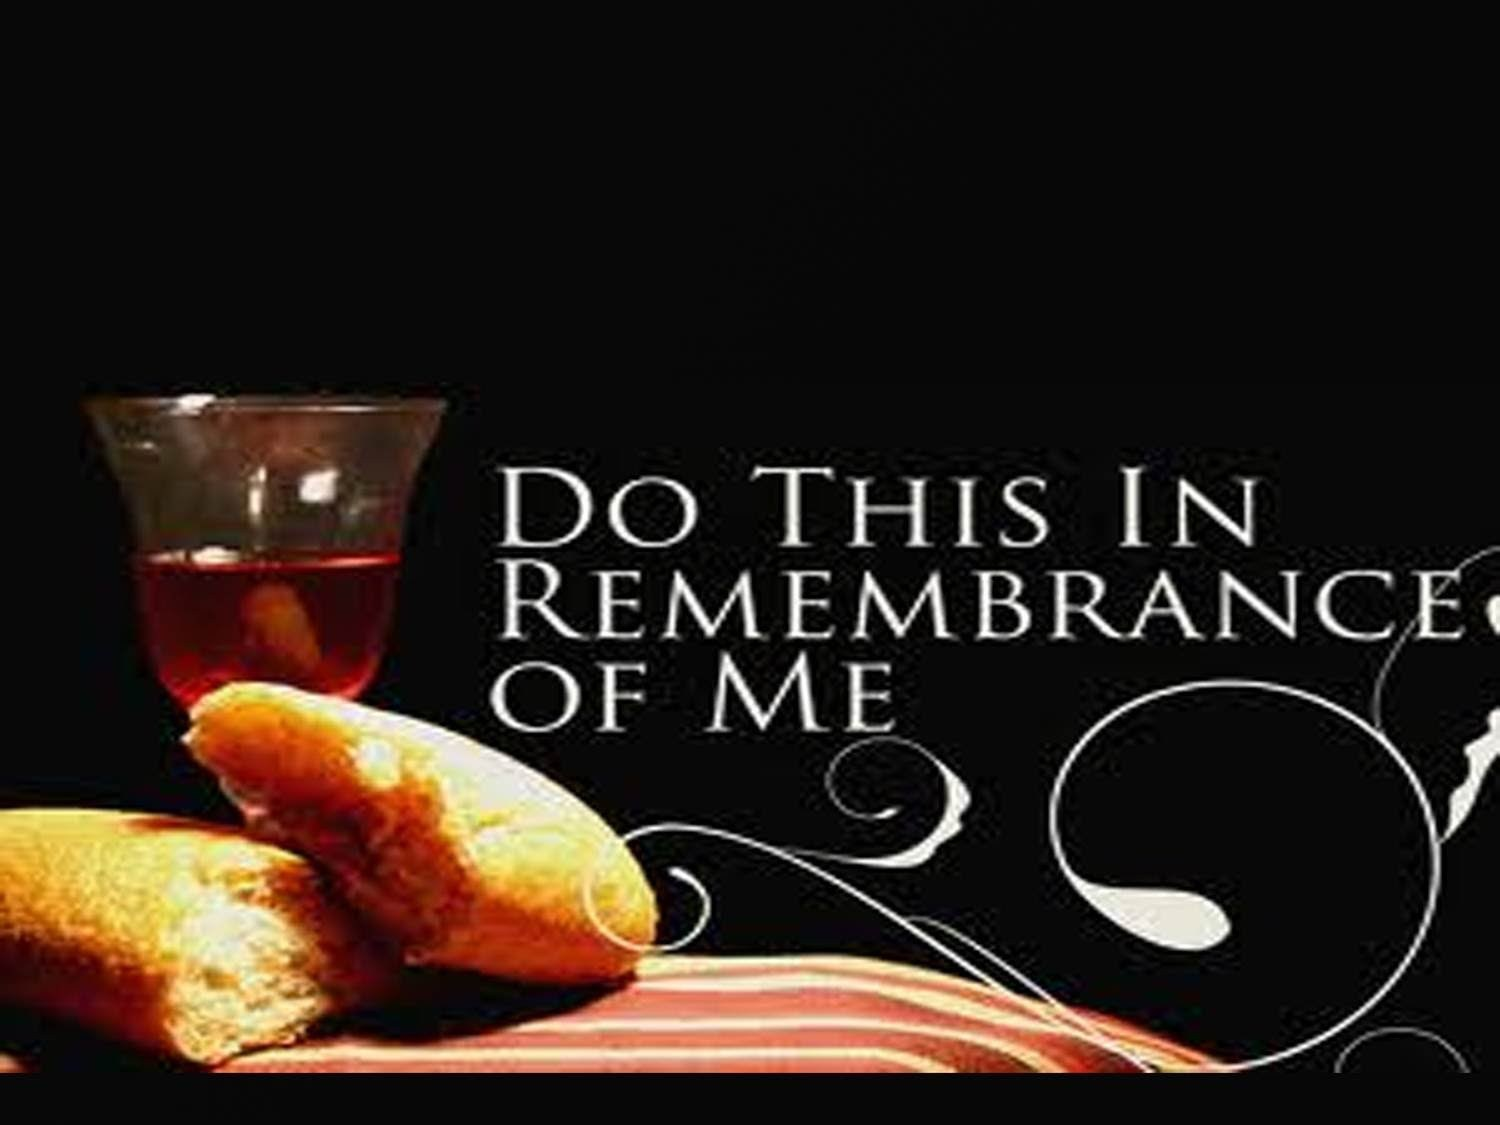 Do this in remembrance of me clipart 3 » Clipart Portal.